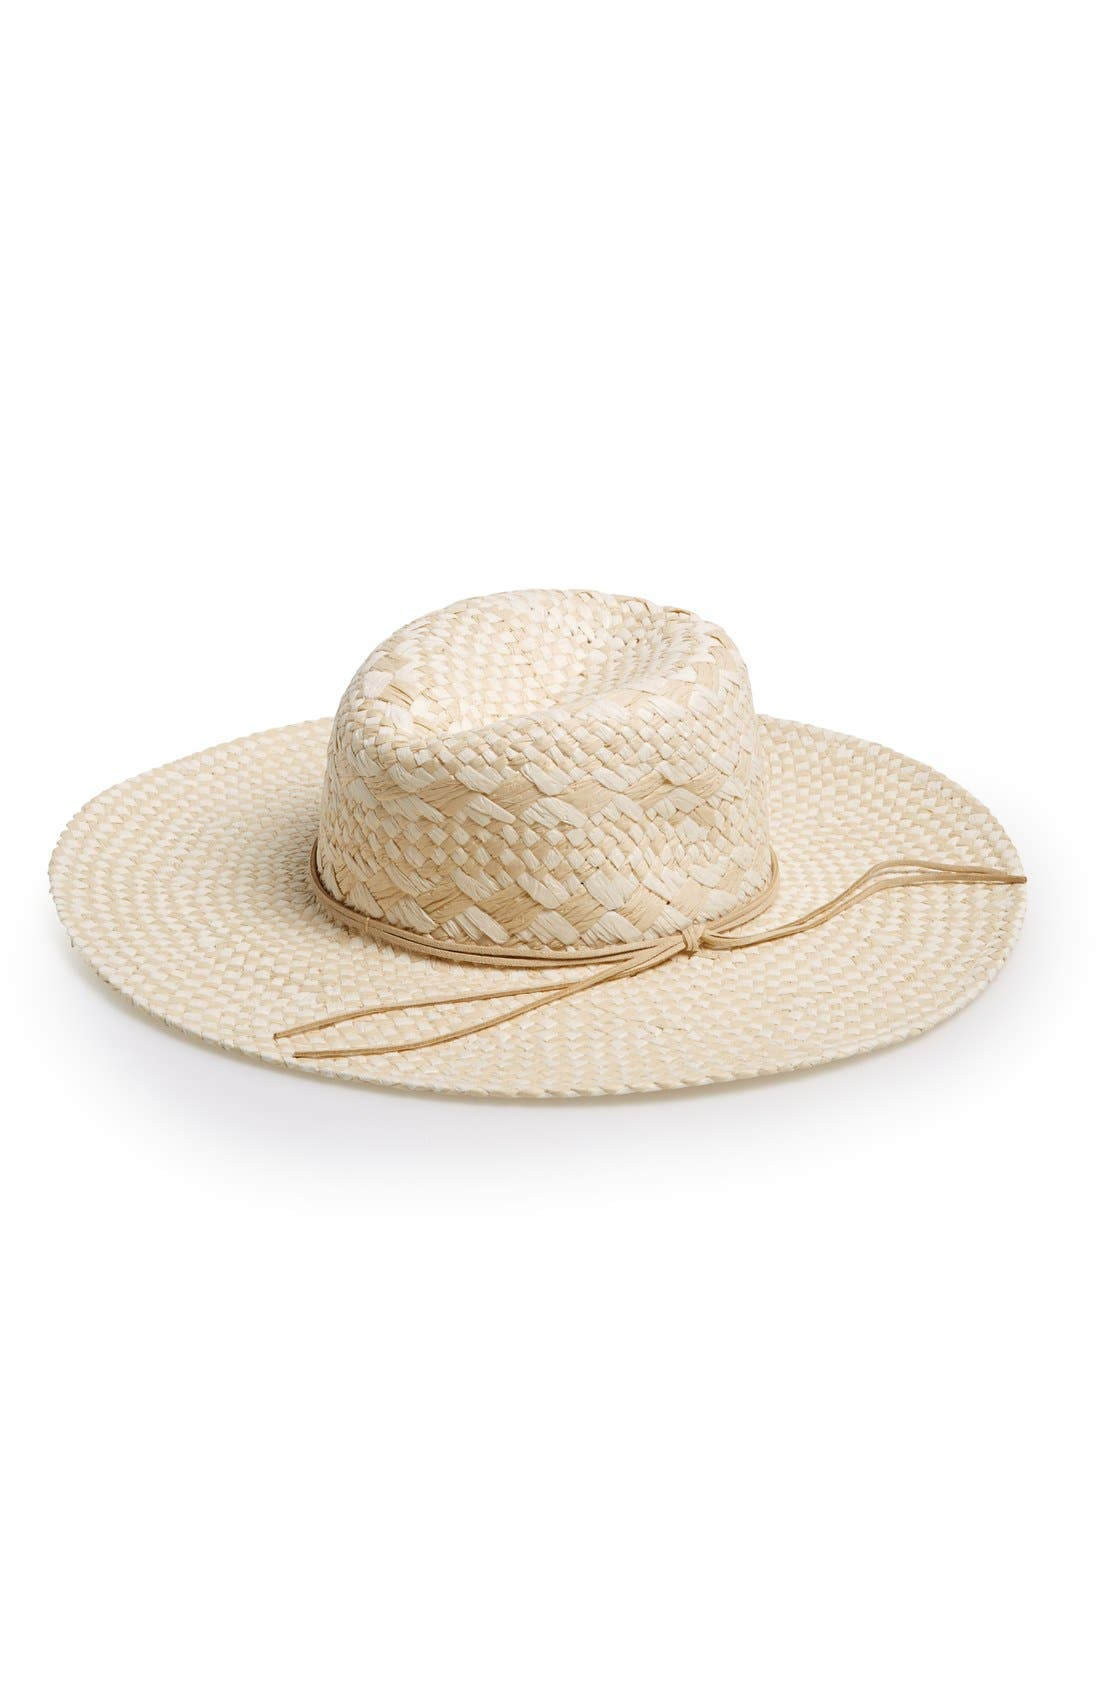 Alternate Image 1 Selected - David & Young Diamond Weave Floppy Straw Hat